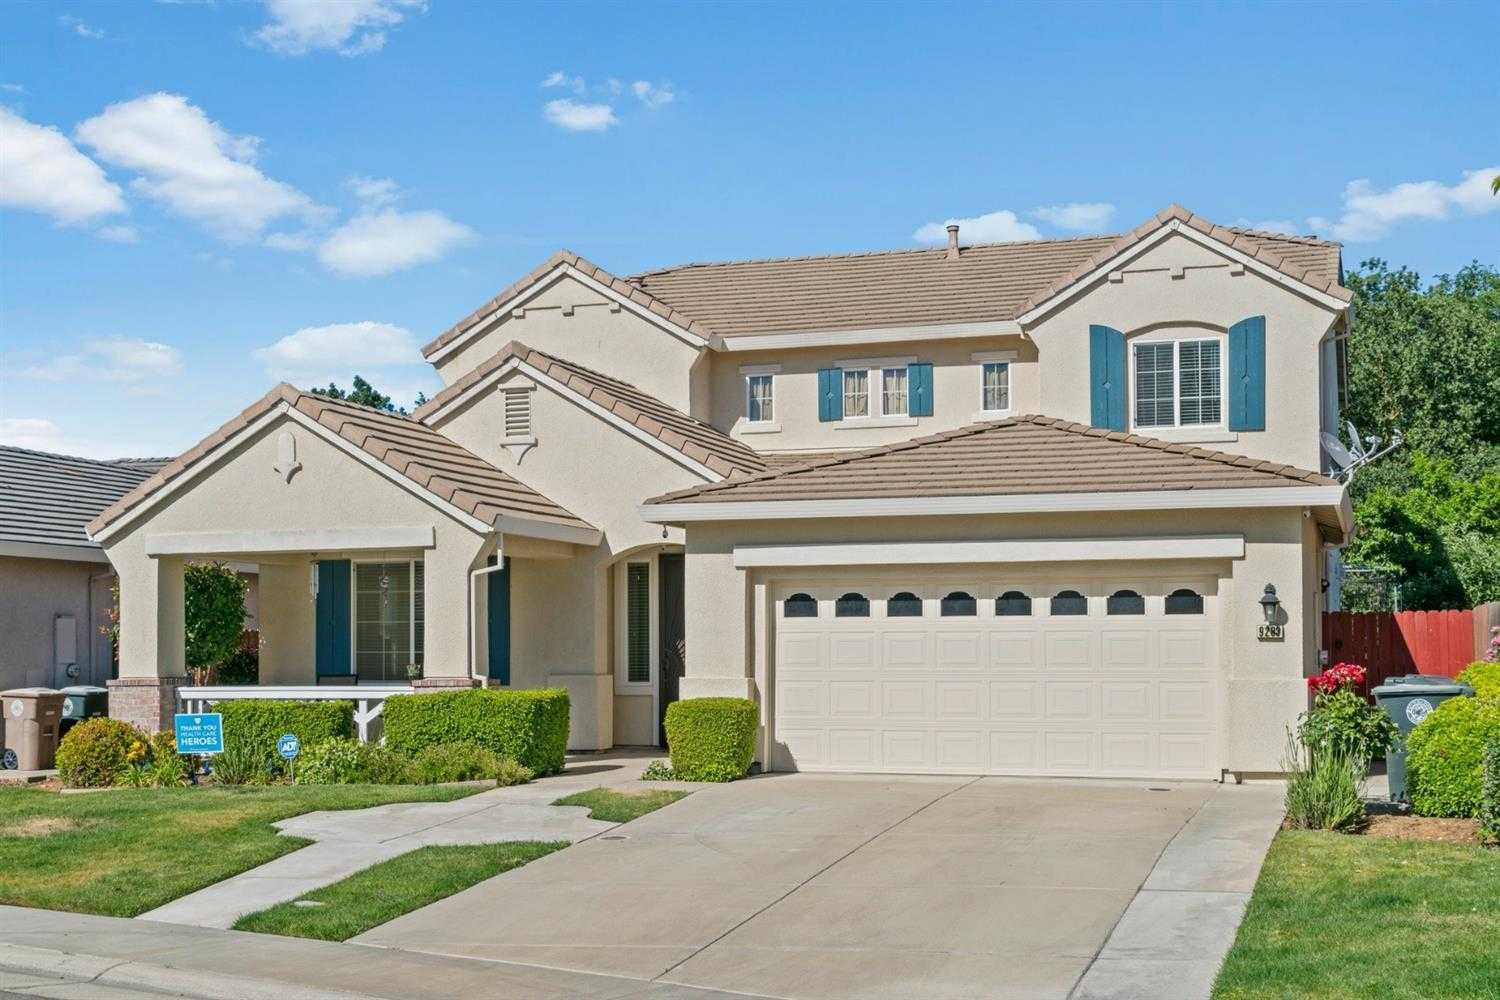 $522,000 - 5Br/3Ba -  for Sale in Bell South, Elk Grove